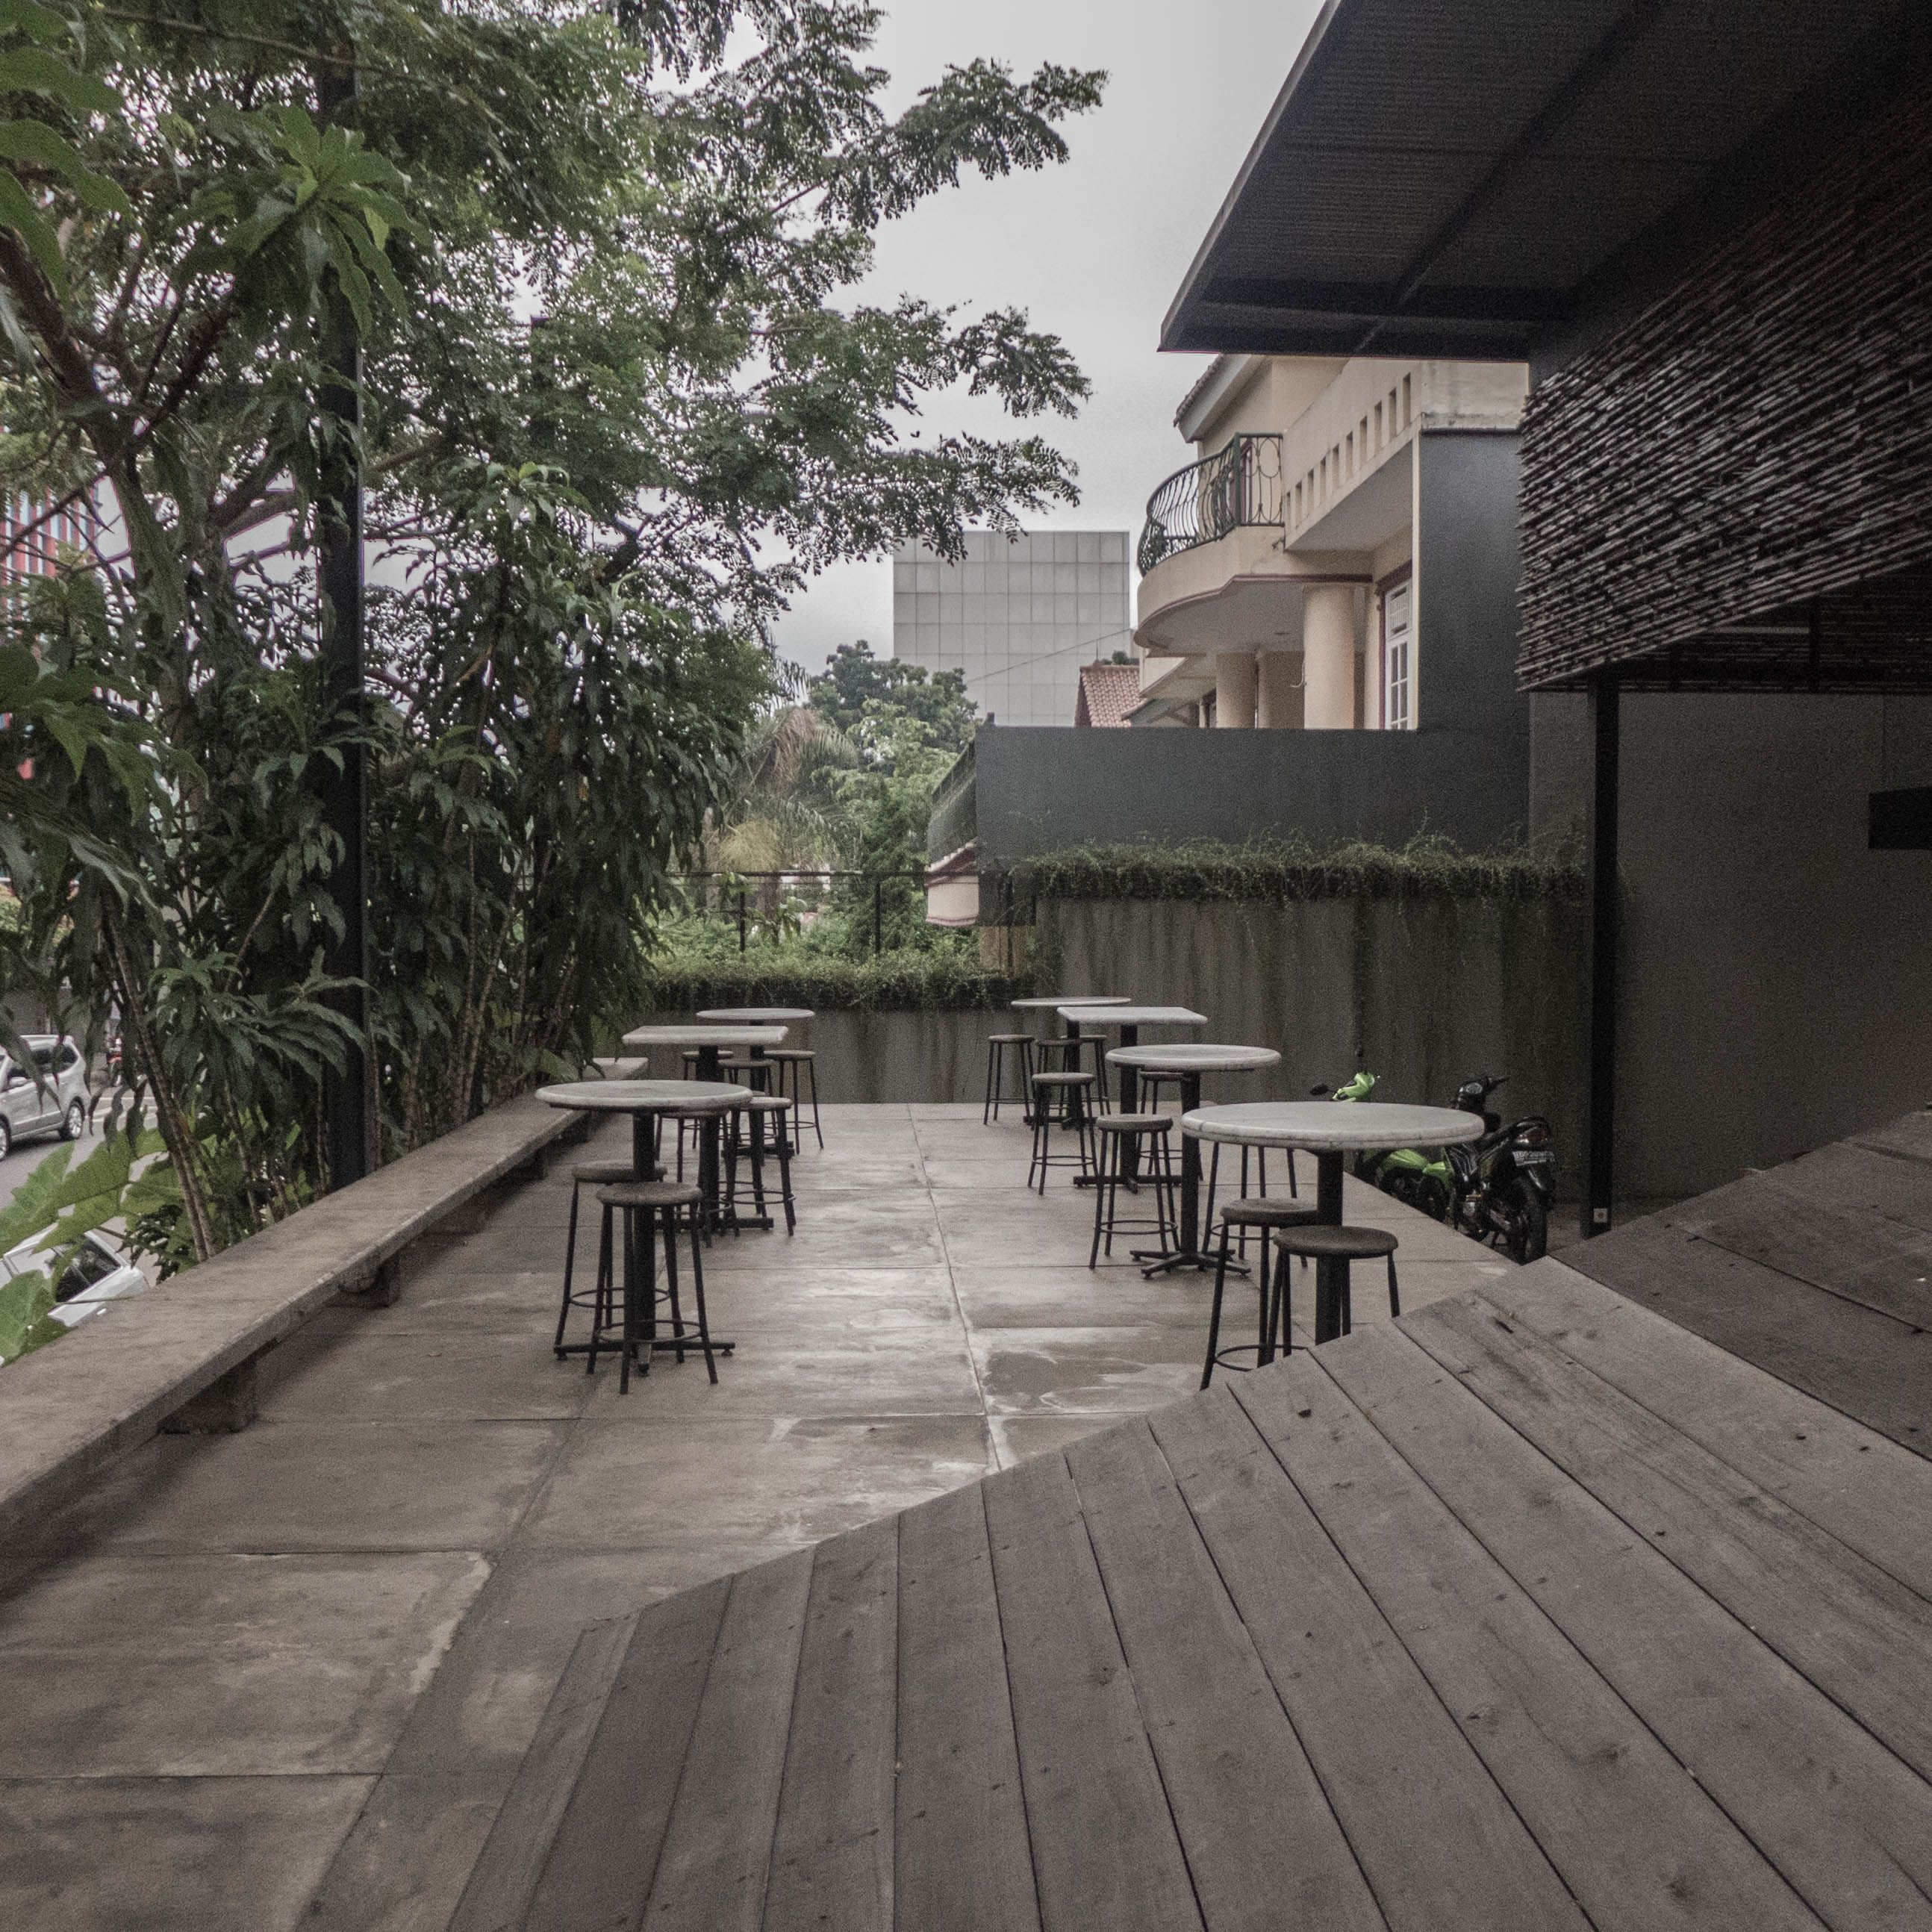 Captivating Terrace Of A Coffee Shop [Bakoel Koffiee Bintaro By Andra Matin Architect]